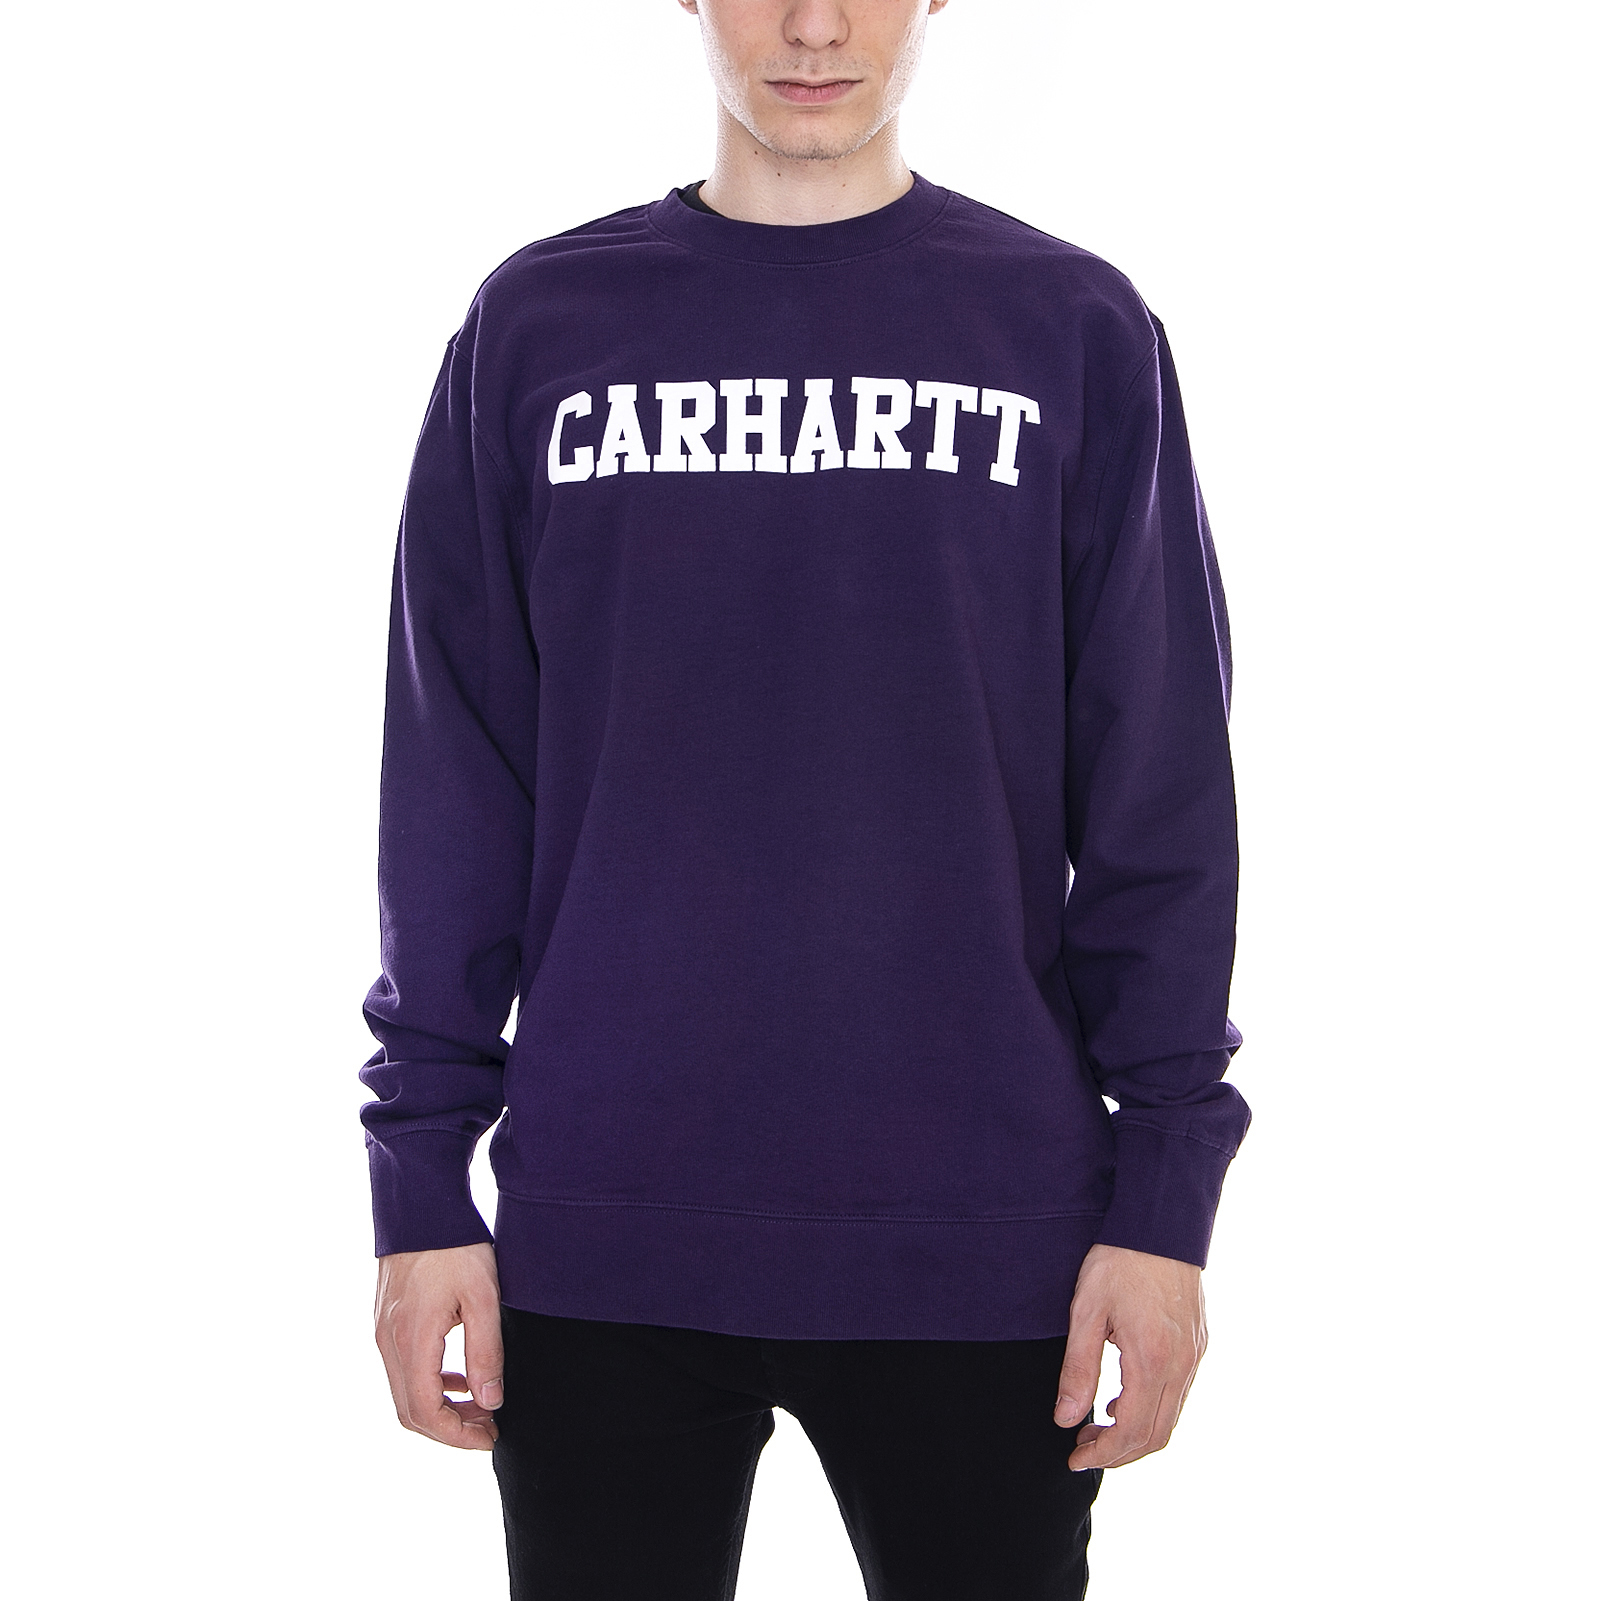 Details about Carhartt Sweatshirts College Sweatshirt Lakers / White Violet